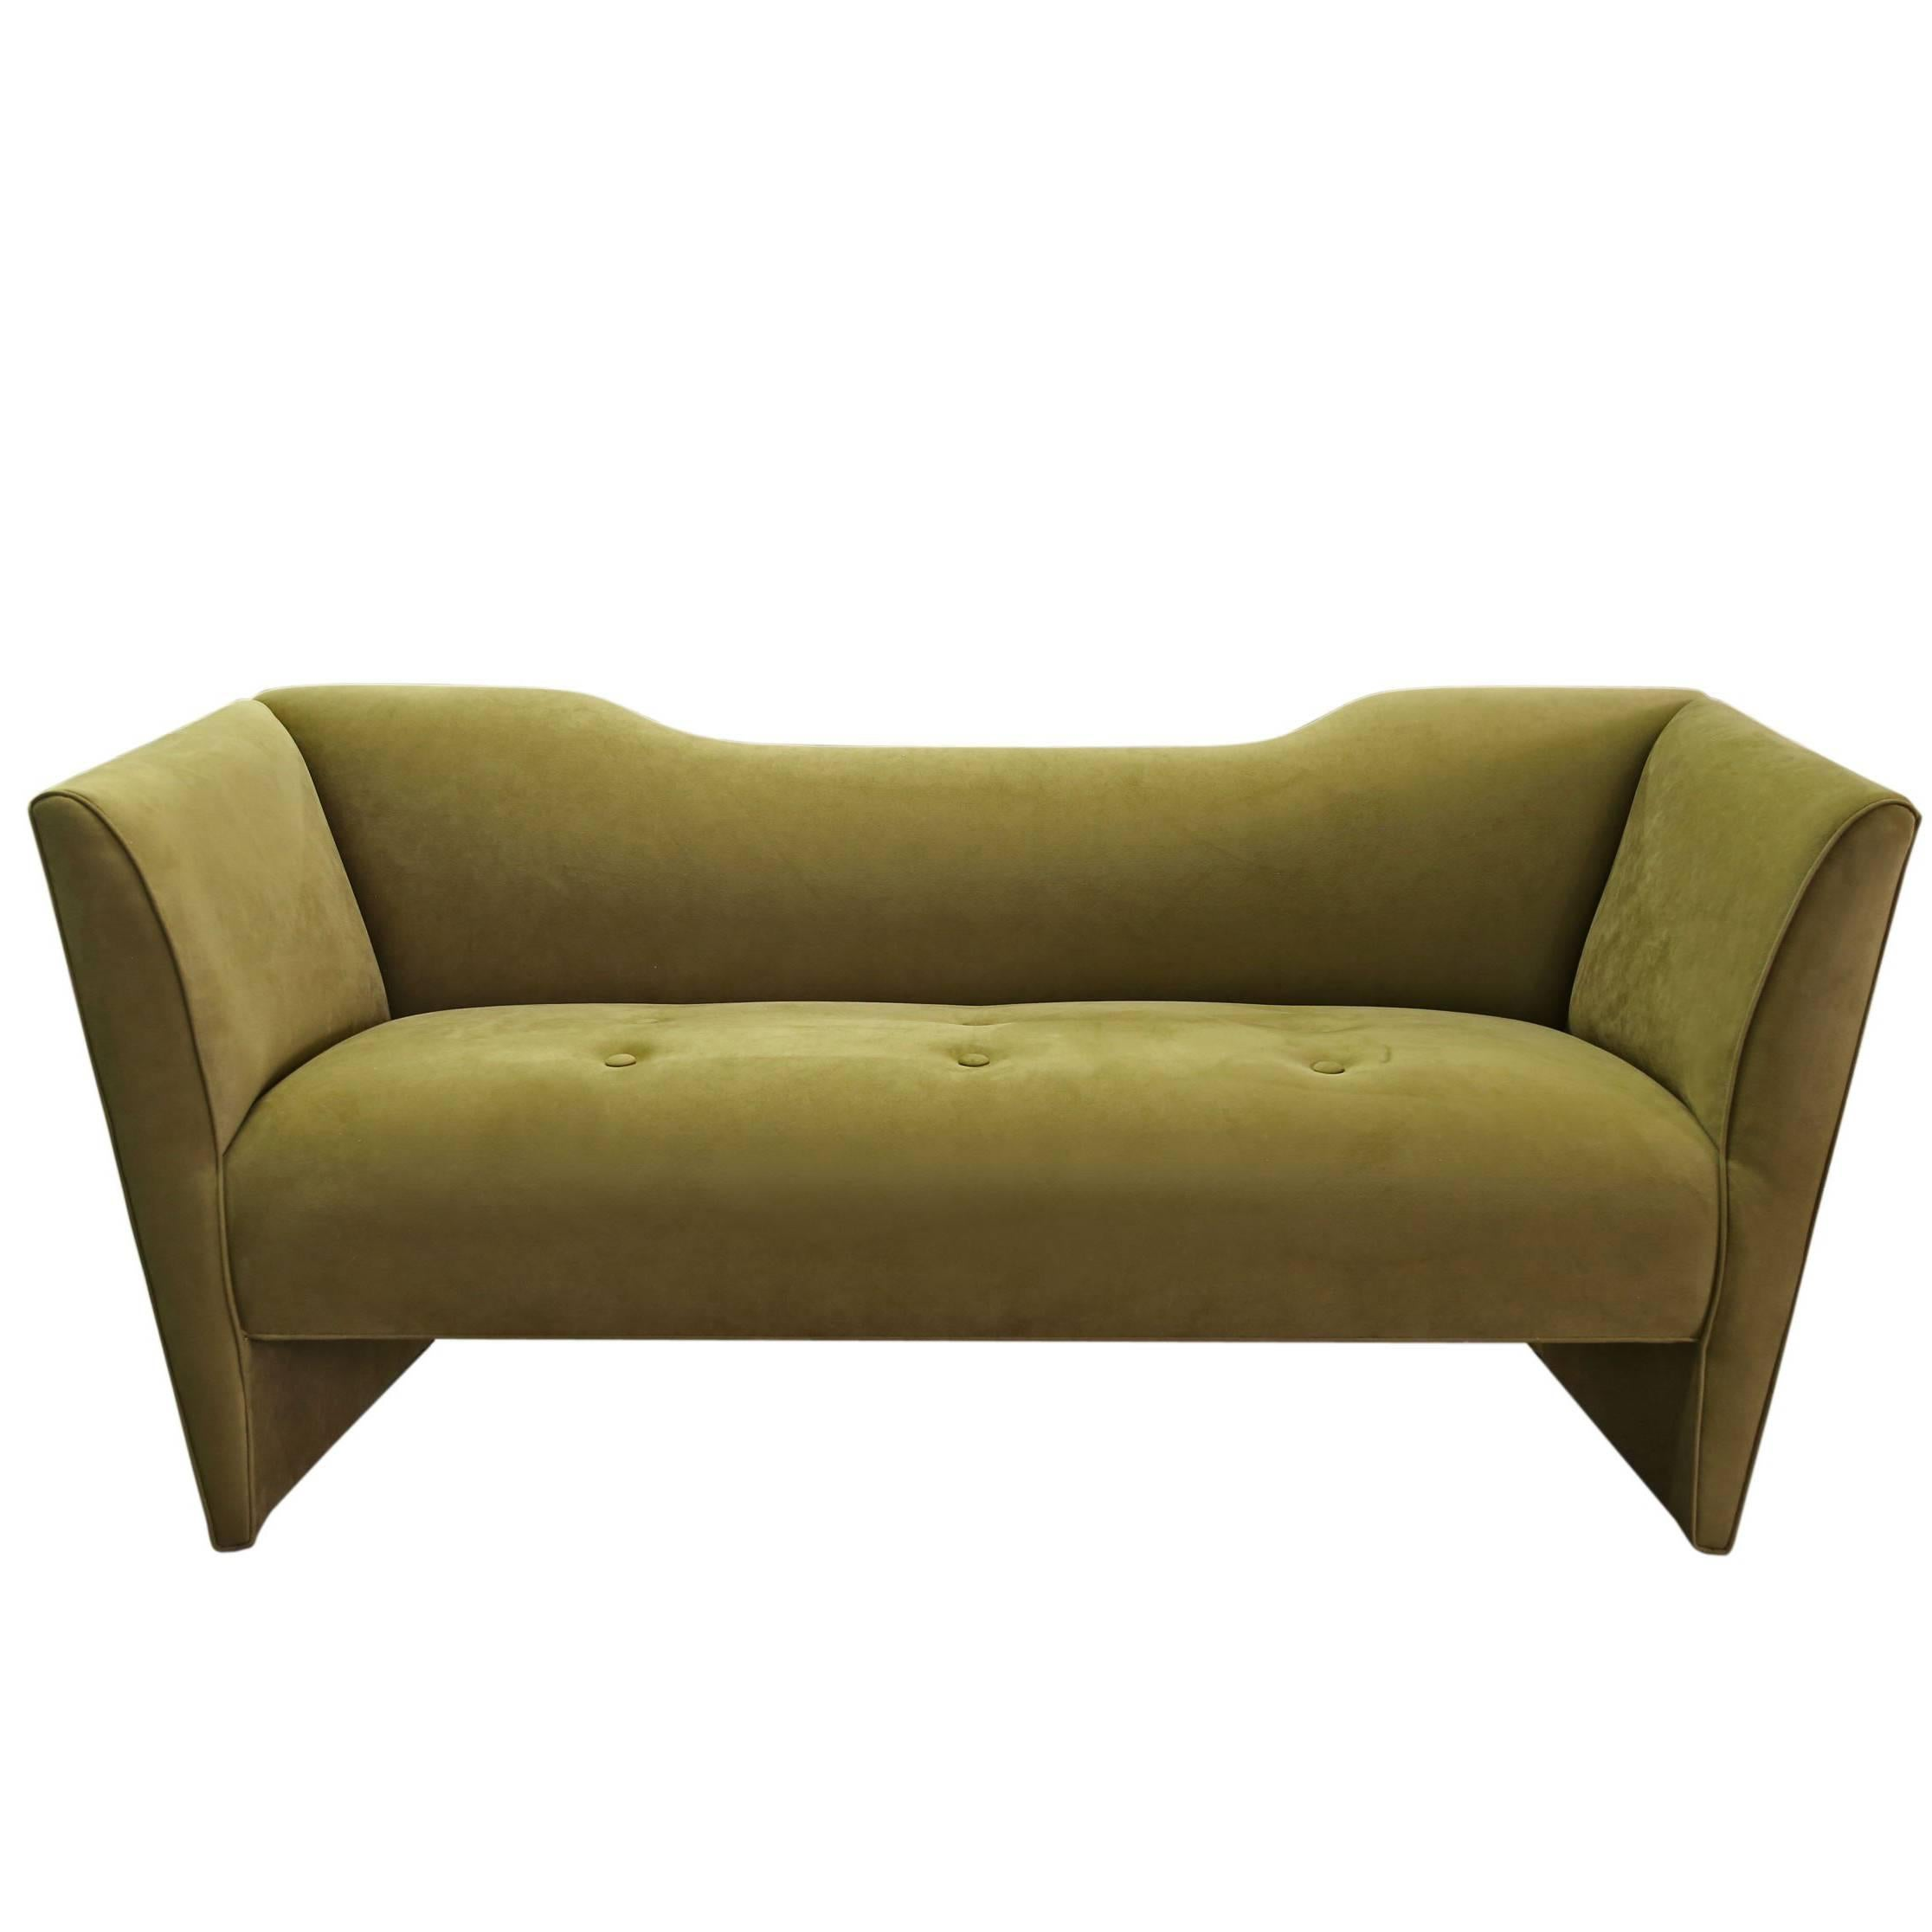 Charmant Sentient Memphis Inspired Nersi Sofa In Green